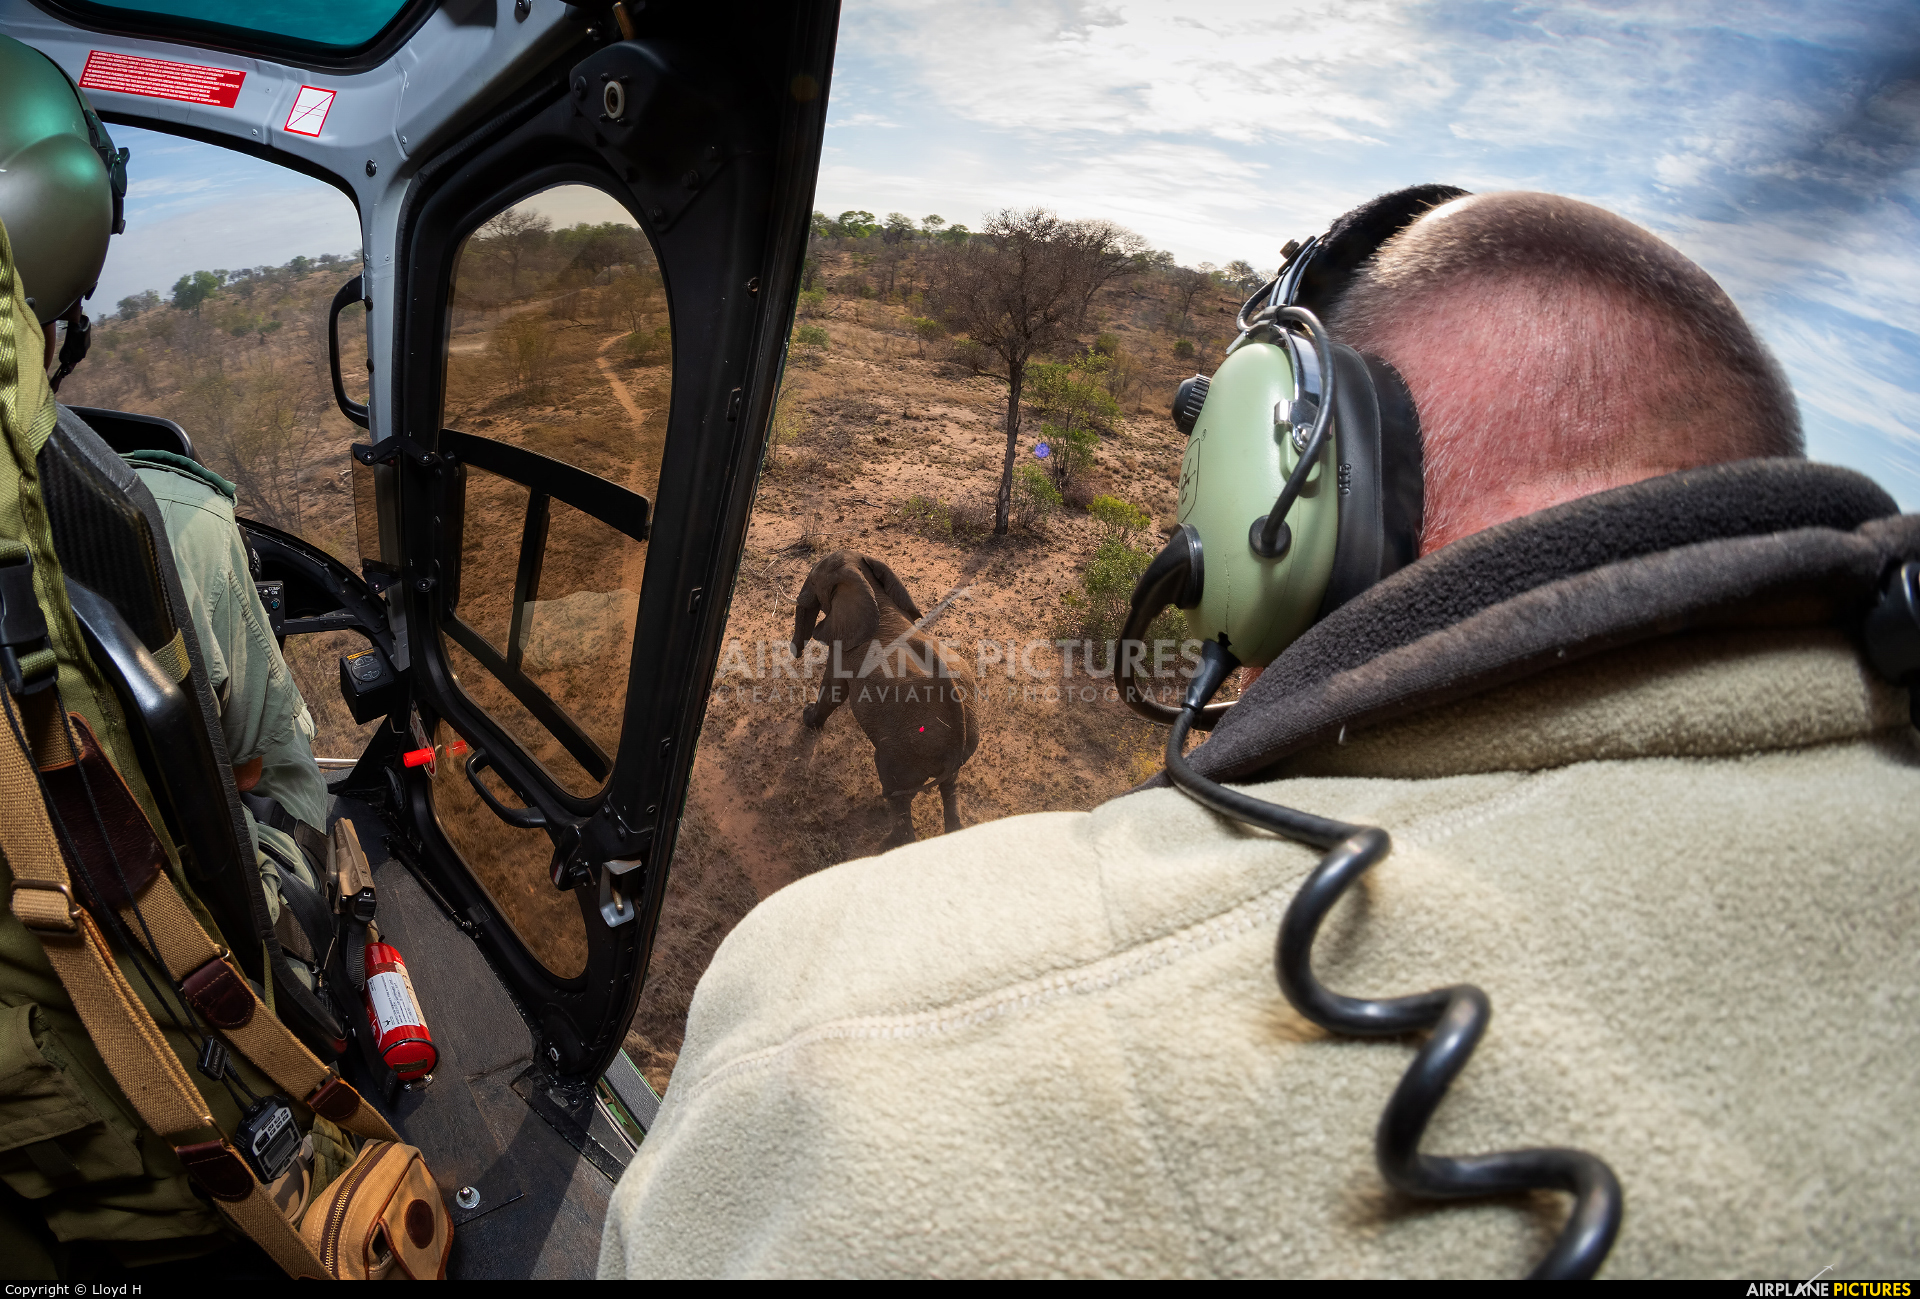 South Africa National Parks Air Wing ZS-OXK aircraft at In Flight - South Africa